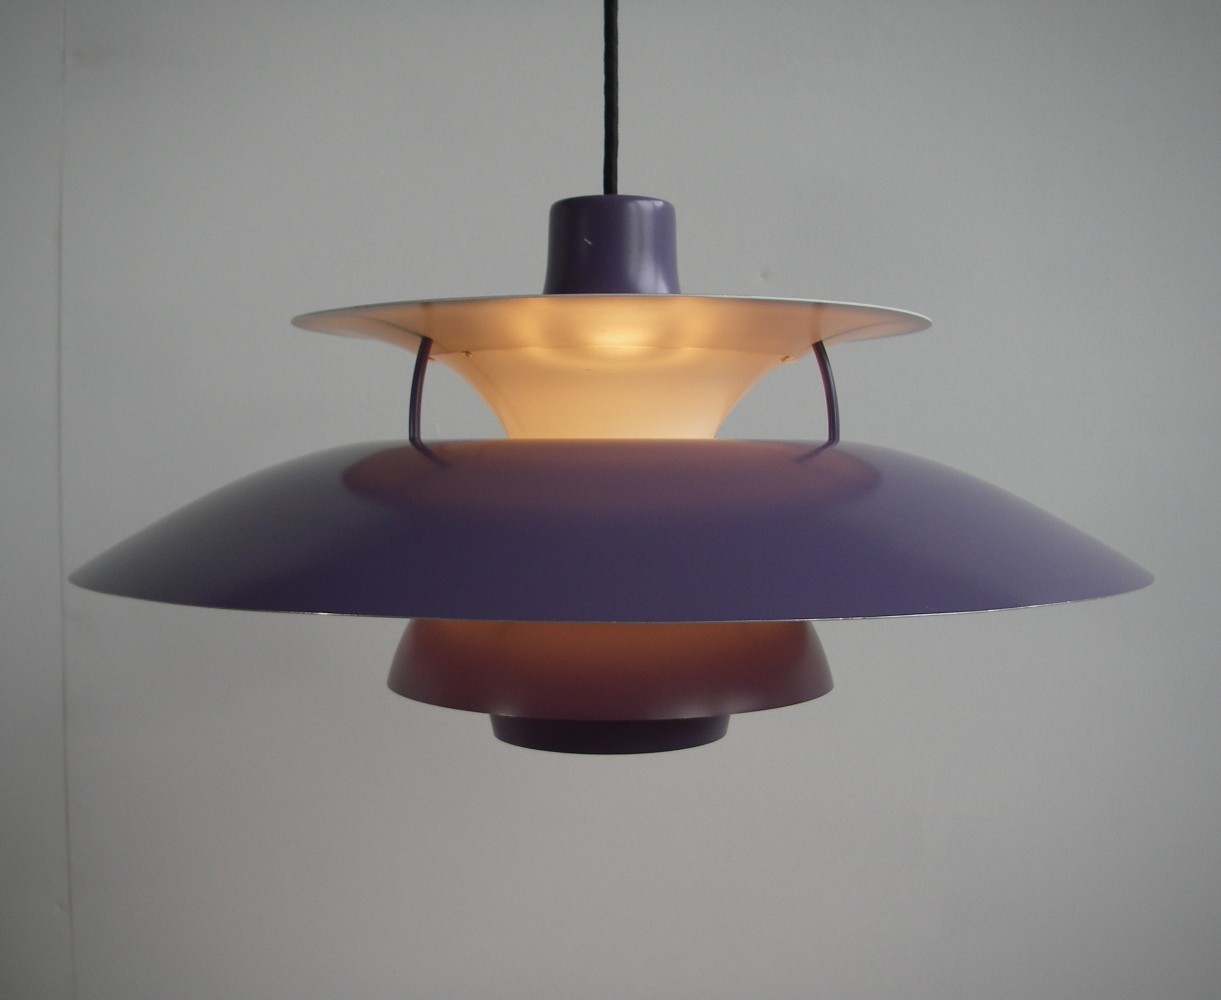 2 x Purple PH 5 hanging lamp by Poul Henningsen for Louis Poulsen, 1960s